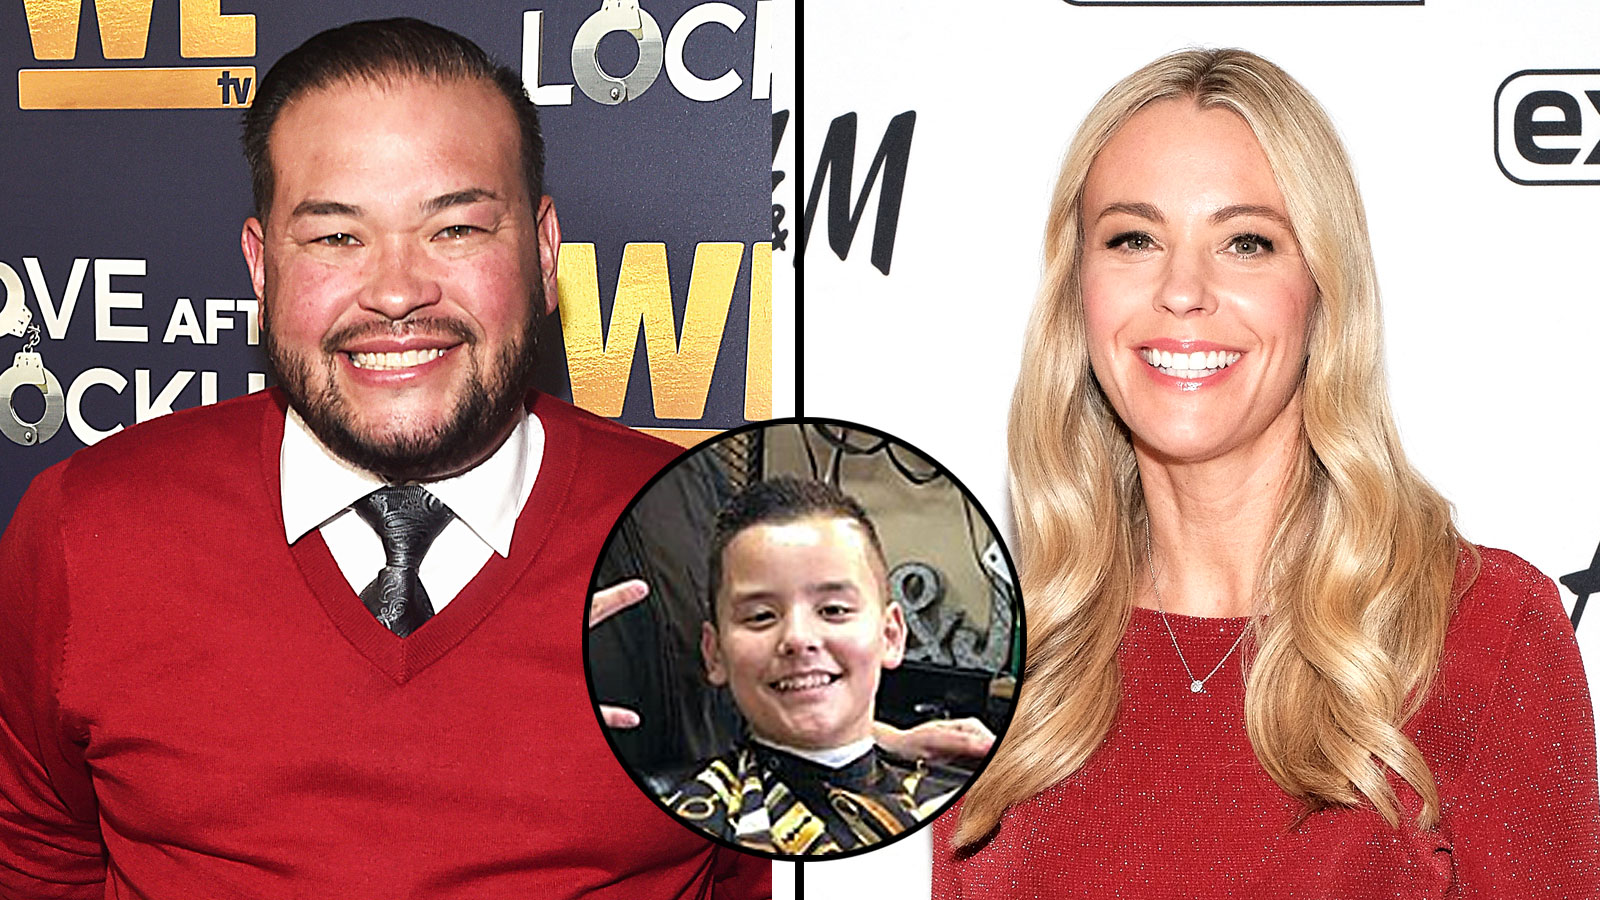 Just In Time For Christmas.When Will Collin Gosselin Return Home Find Out His Release